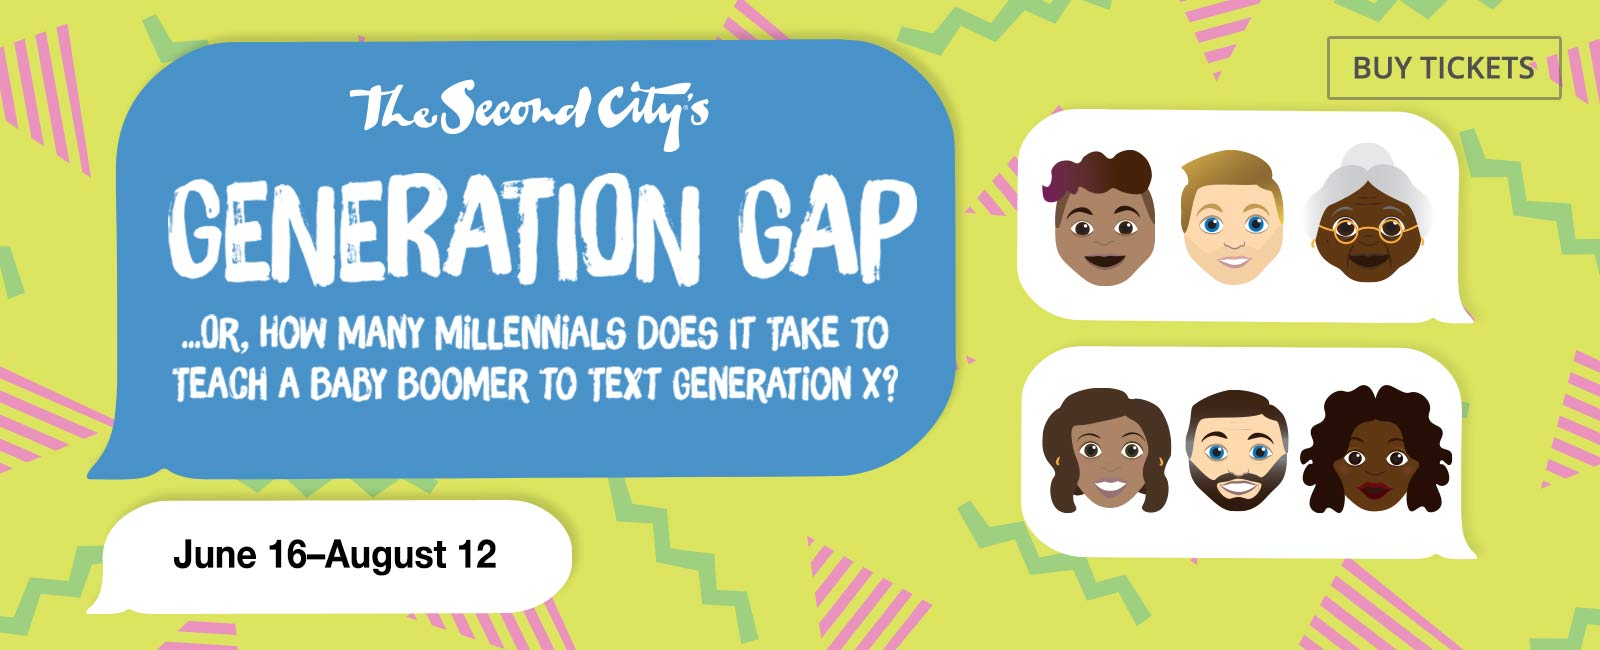 SecondCity_GenerationGap_1600x650